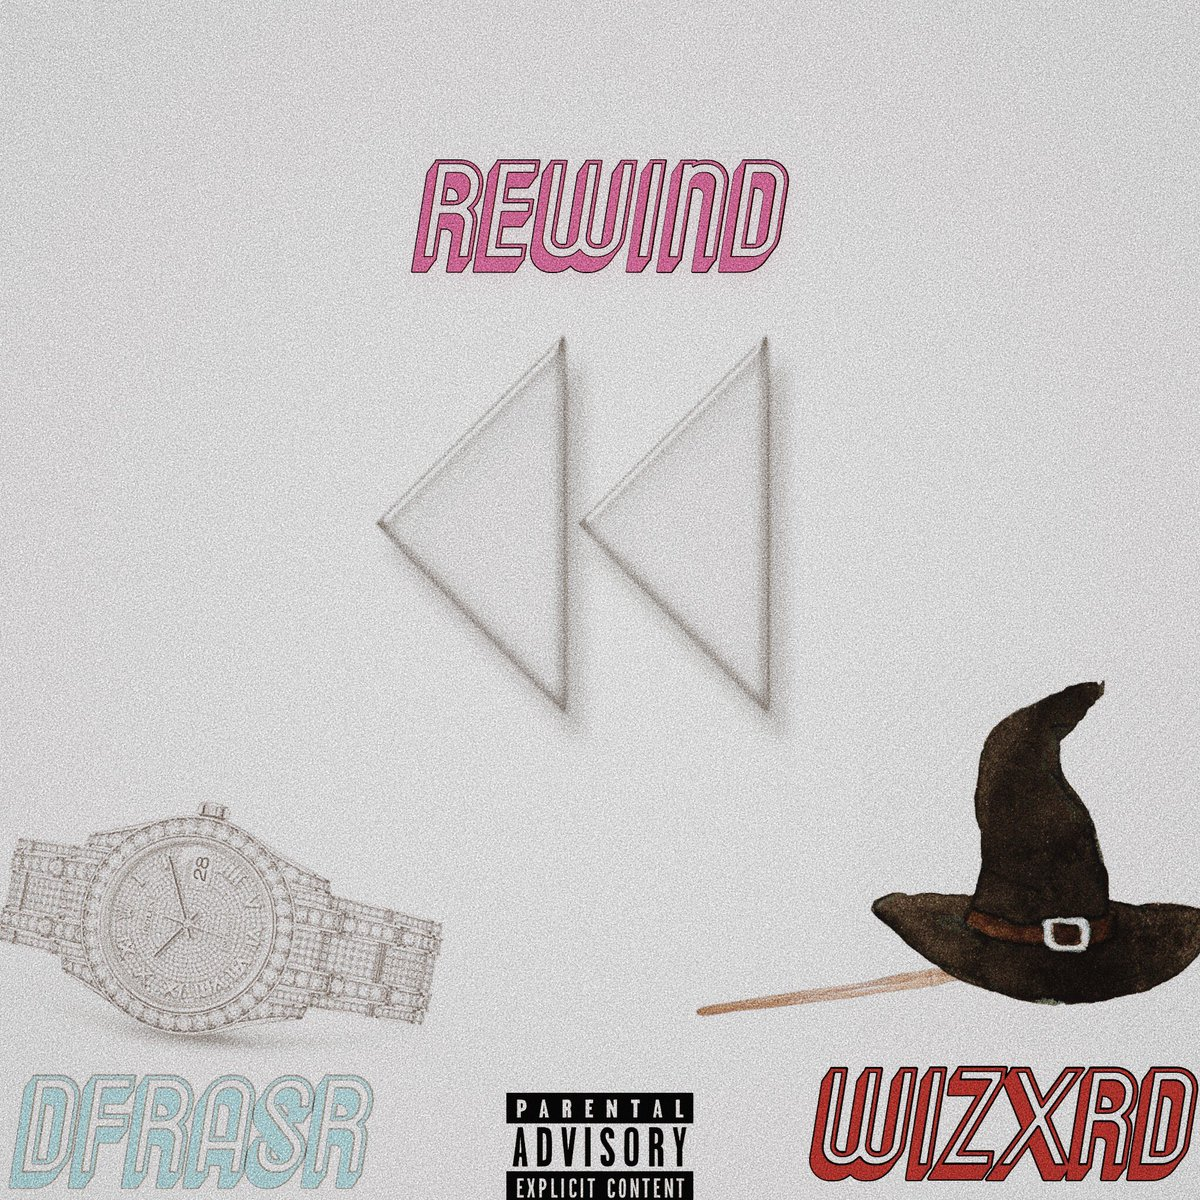 RT @Iordsuirad: I dropped my 2nd song called 'REWIND' check it out https://t.co/Y4SWsEnEHi https://t.co/frfyyR2Zwl